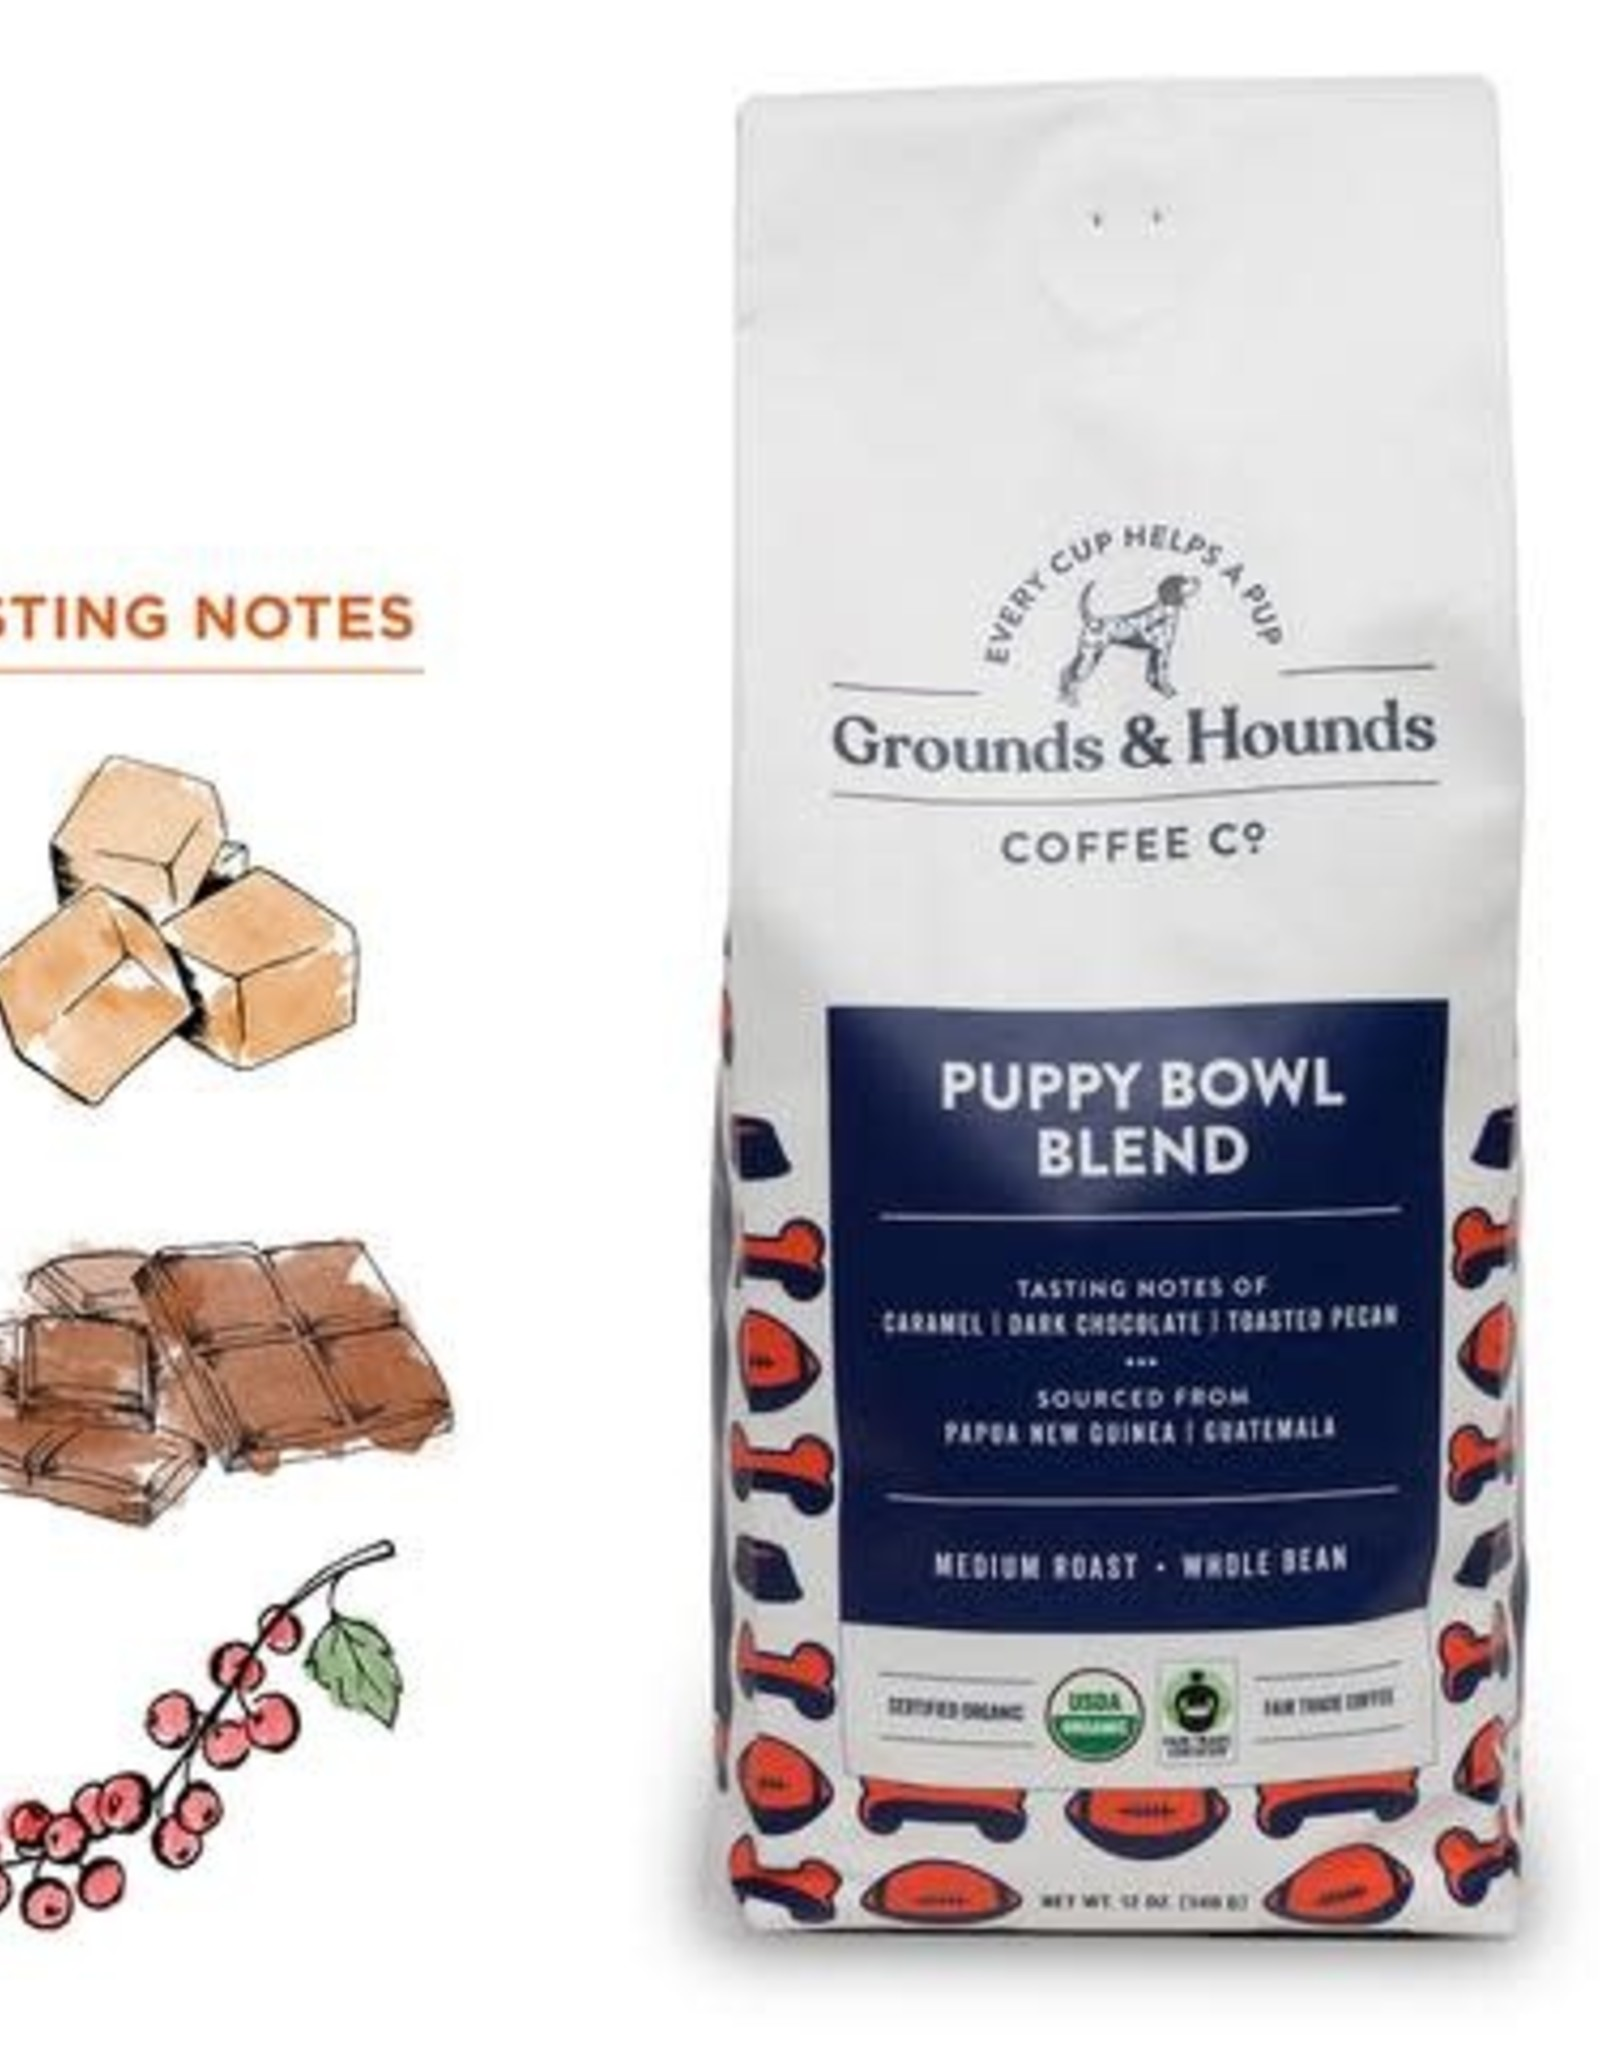 Grounds & Hounds Ground Coffee Puppy Bowl